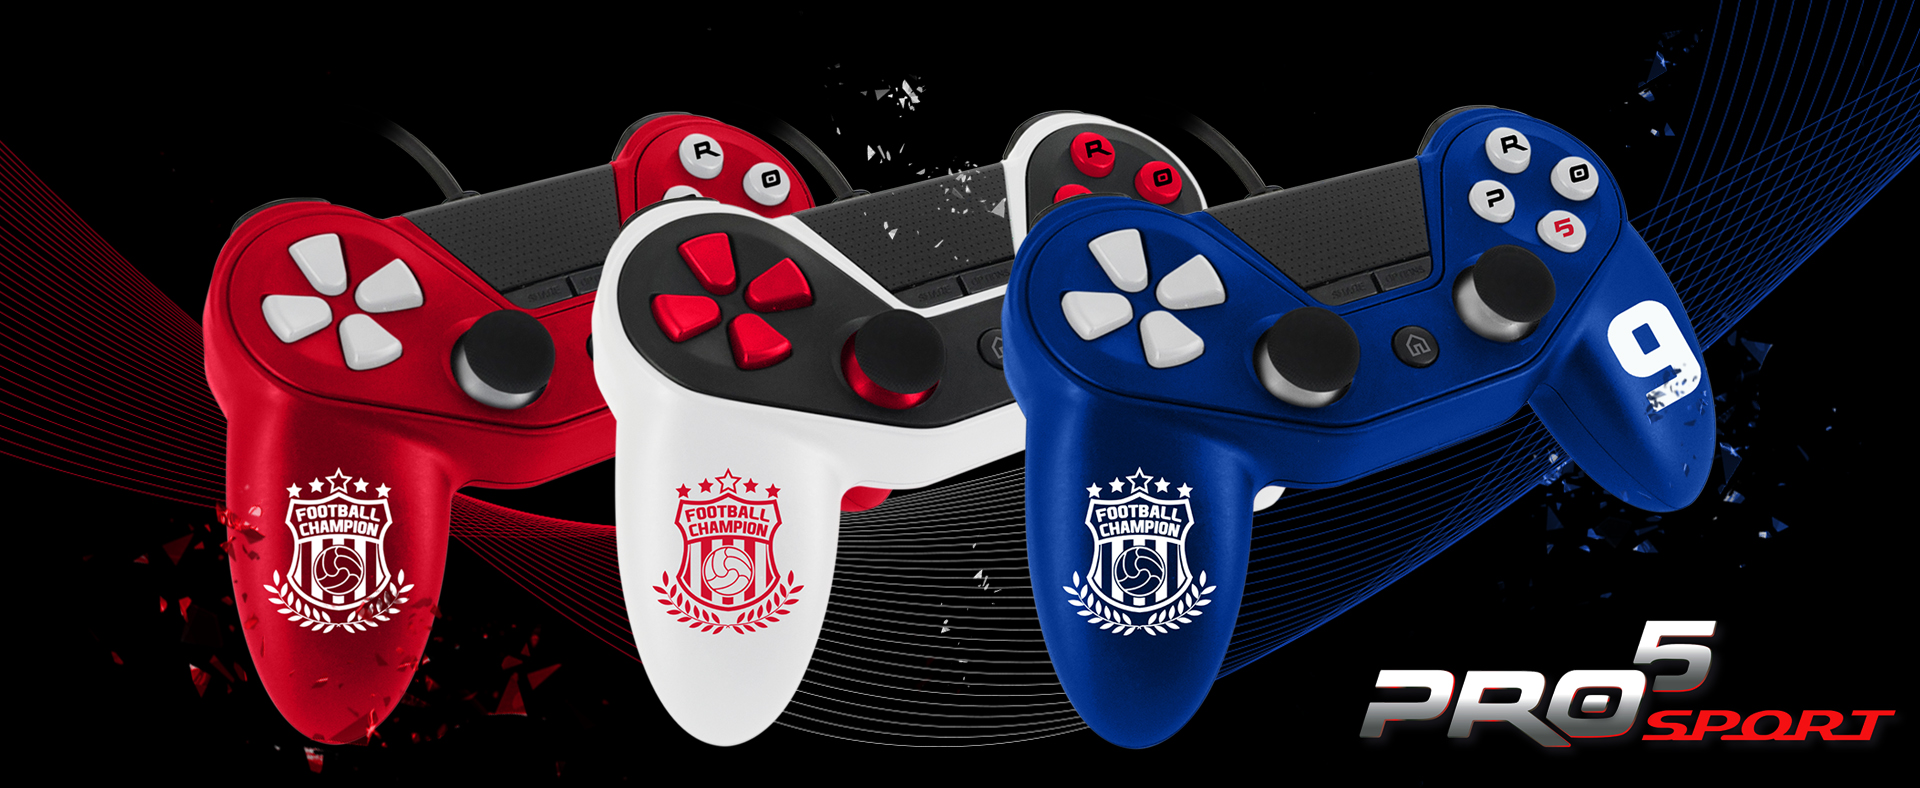 Pro5 Controller Sport, the first soccer controller compatible with PS4 - Playstation 4. A unique and innovative design for high performance and a perfect grip controller.